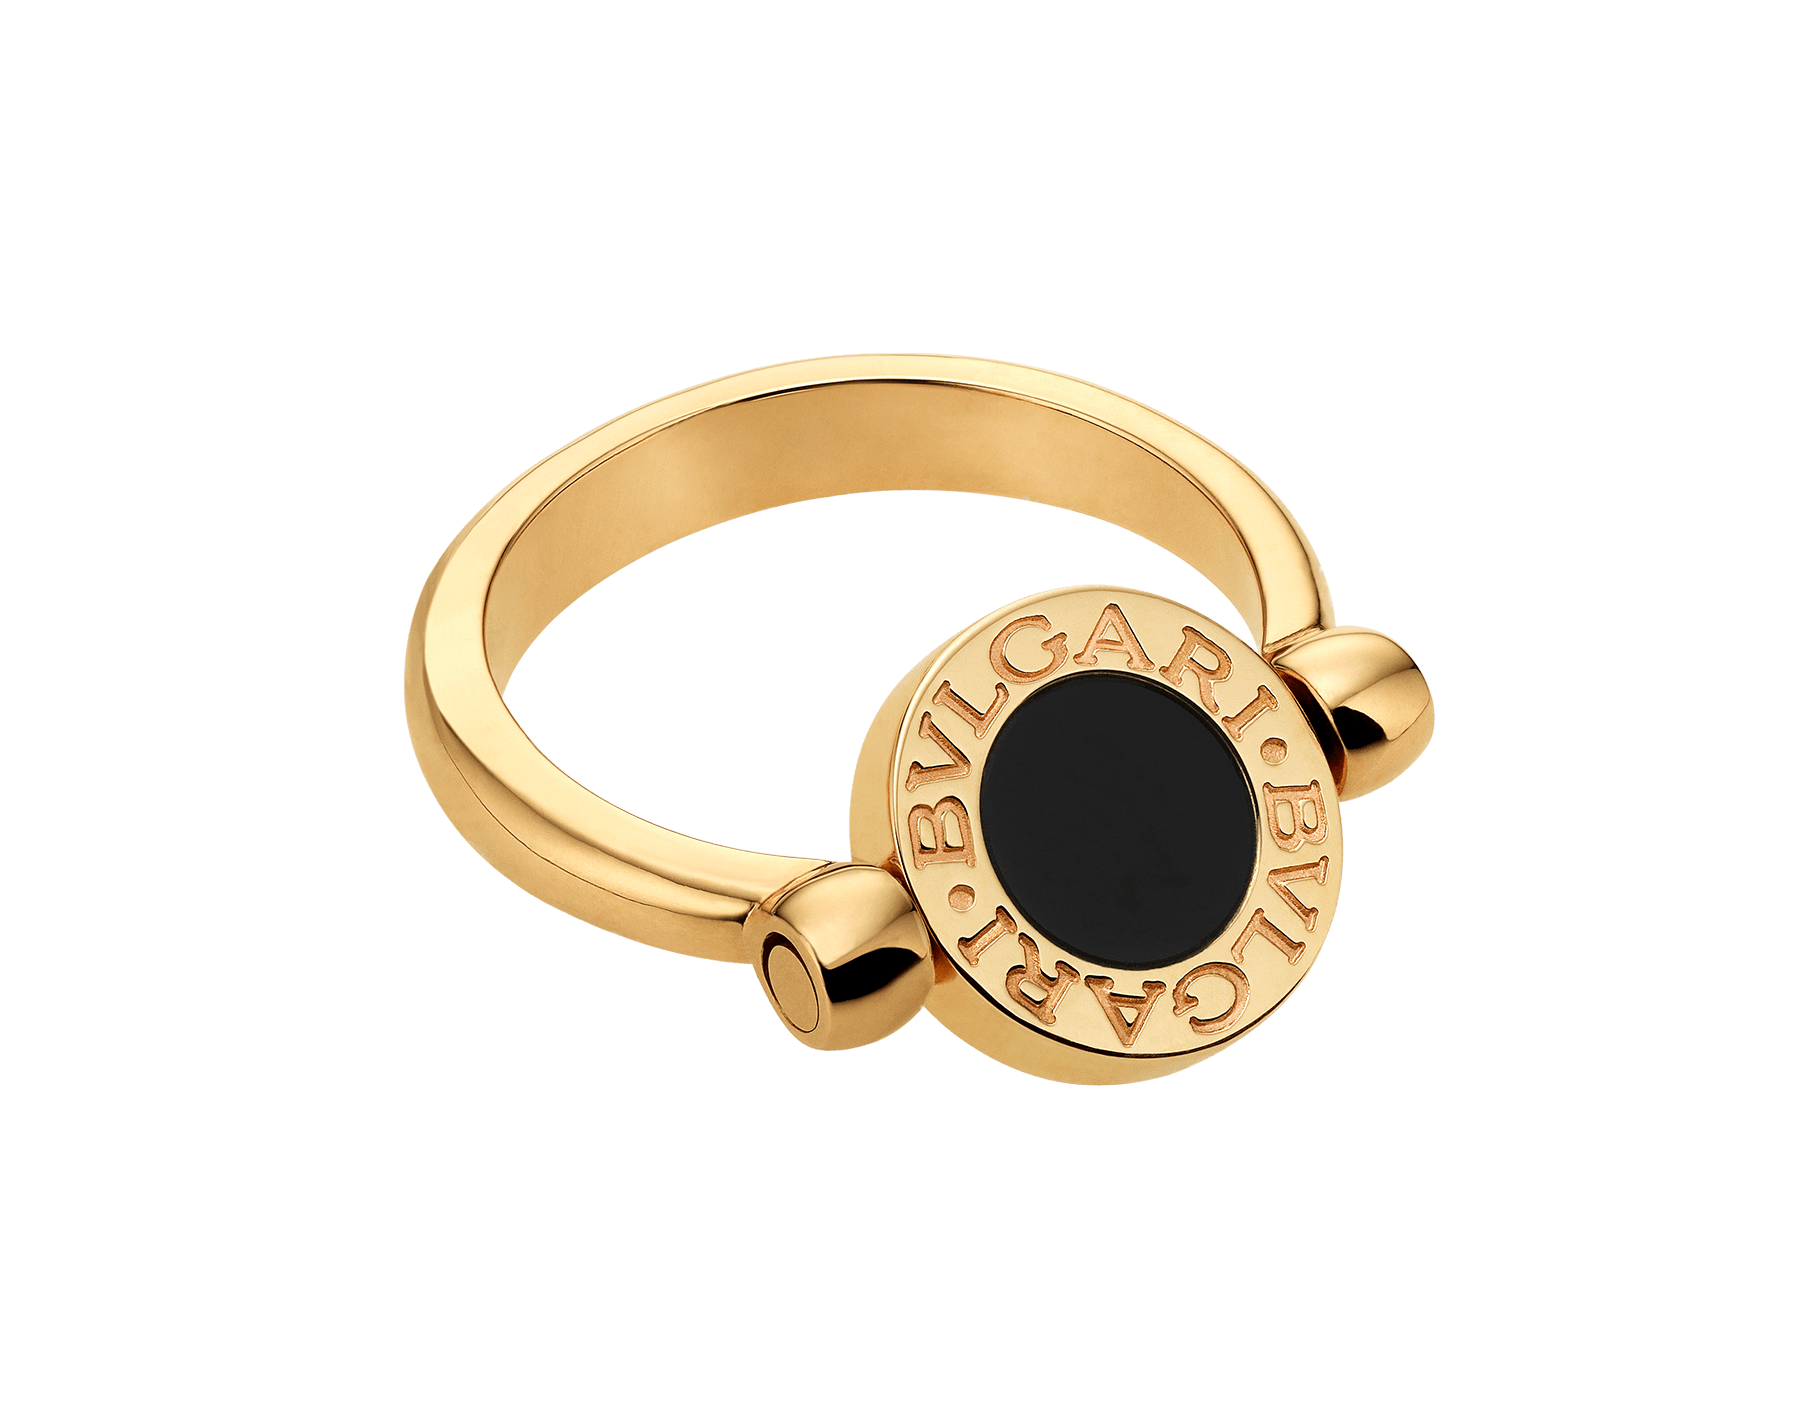 BVLGARI BVLGARI 18 kt yellow gold flip ring set with mother-of-pearl and onyx elements AN857191 image 2